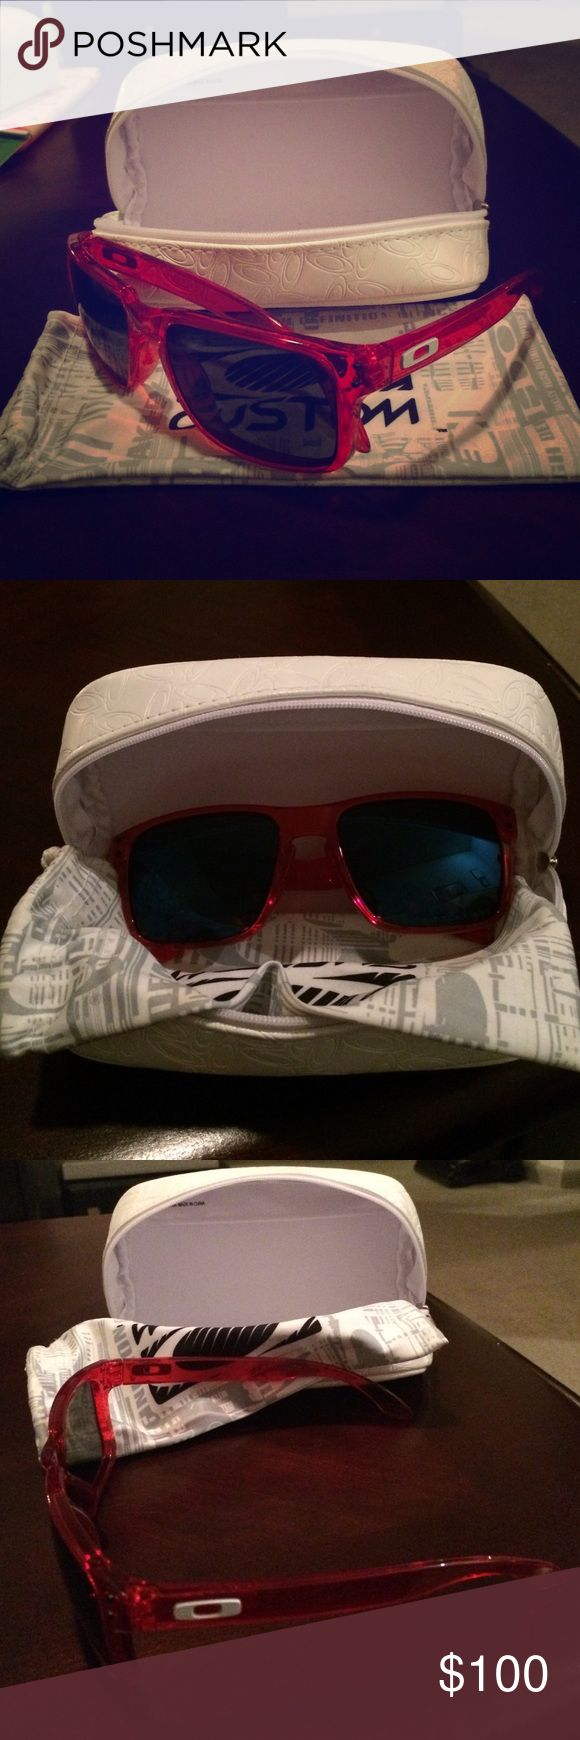 Oakley Custom Holbrook Polarized Sunglasses Oakley Custom Holbrook Polarized Sunglasses. Crystal red frames, polarized ice lenses. Only worn a couple times. A couple small scuffs on lenses. Oakley Accessories Sunglasses